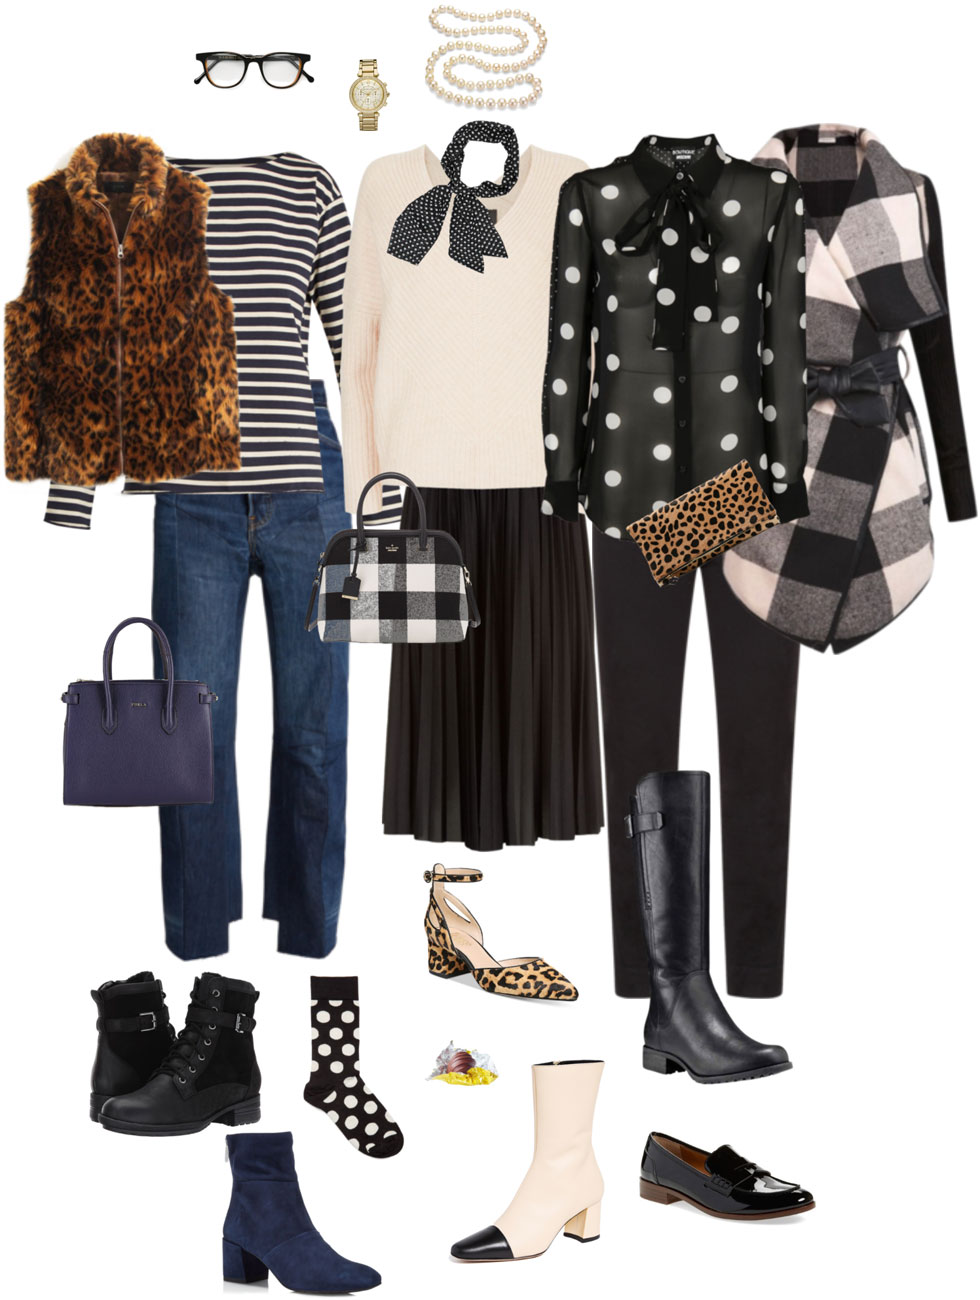 Ensemble: Stripes, Dots, Leopard & Plaid